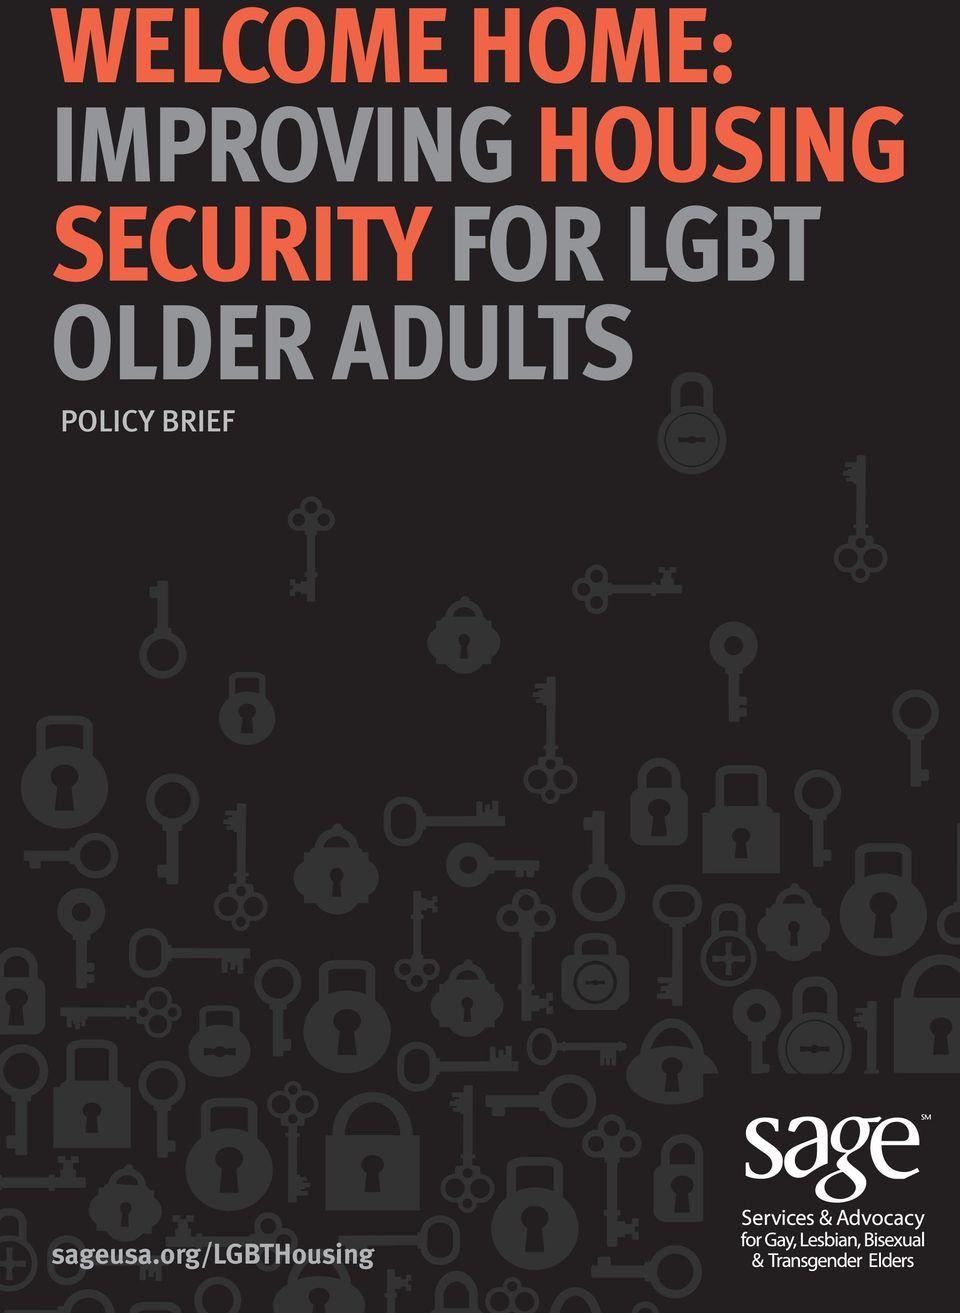 LGBT OLDER ADULTS POLICY